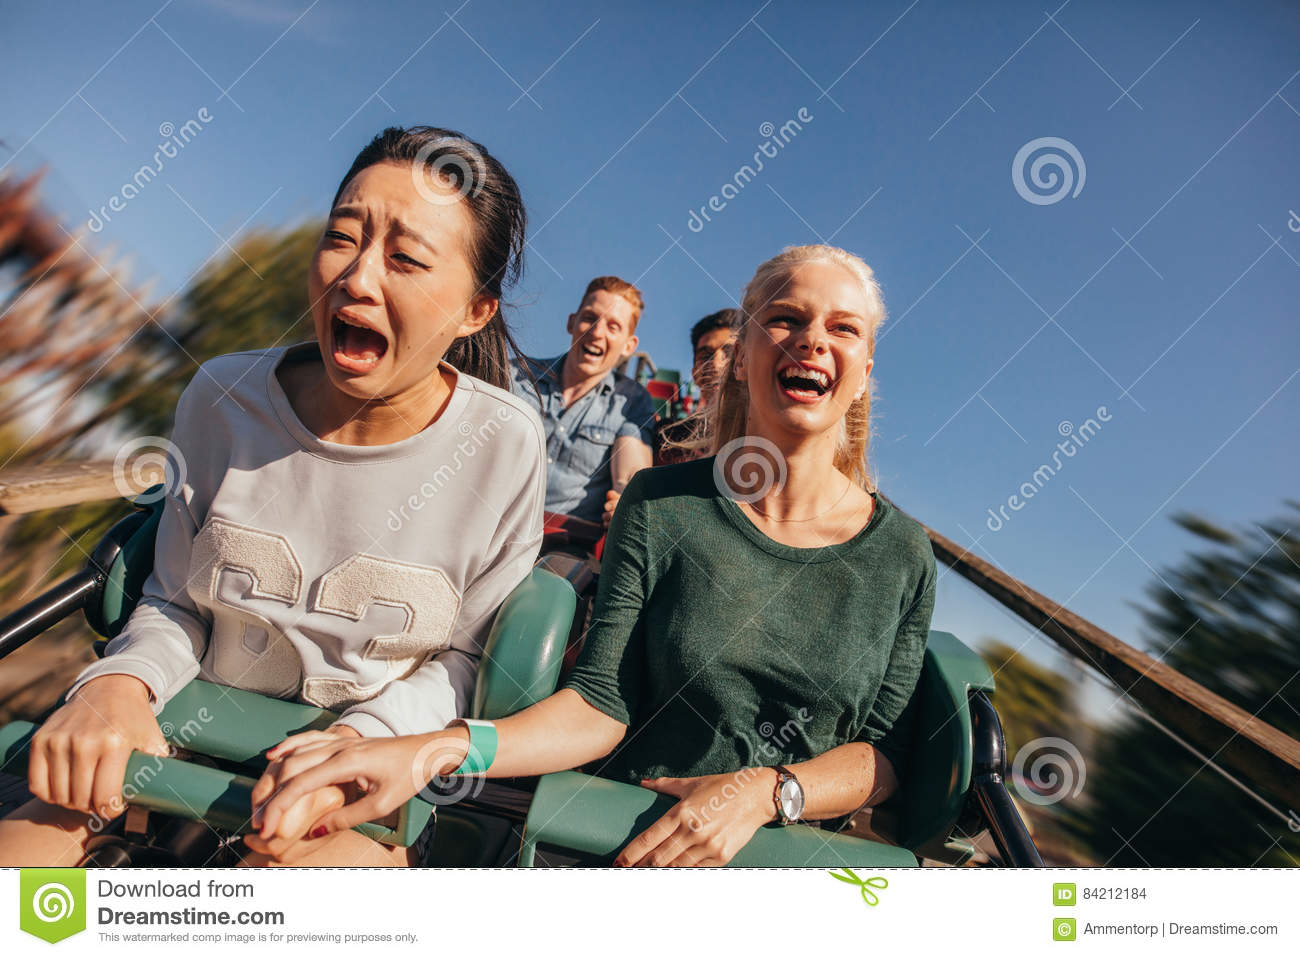 Download Friends Cheering And Riding Roller Coaster At Amusement Park Stock Photo - Image of multiracial, laughing: 84212184